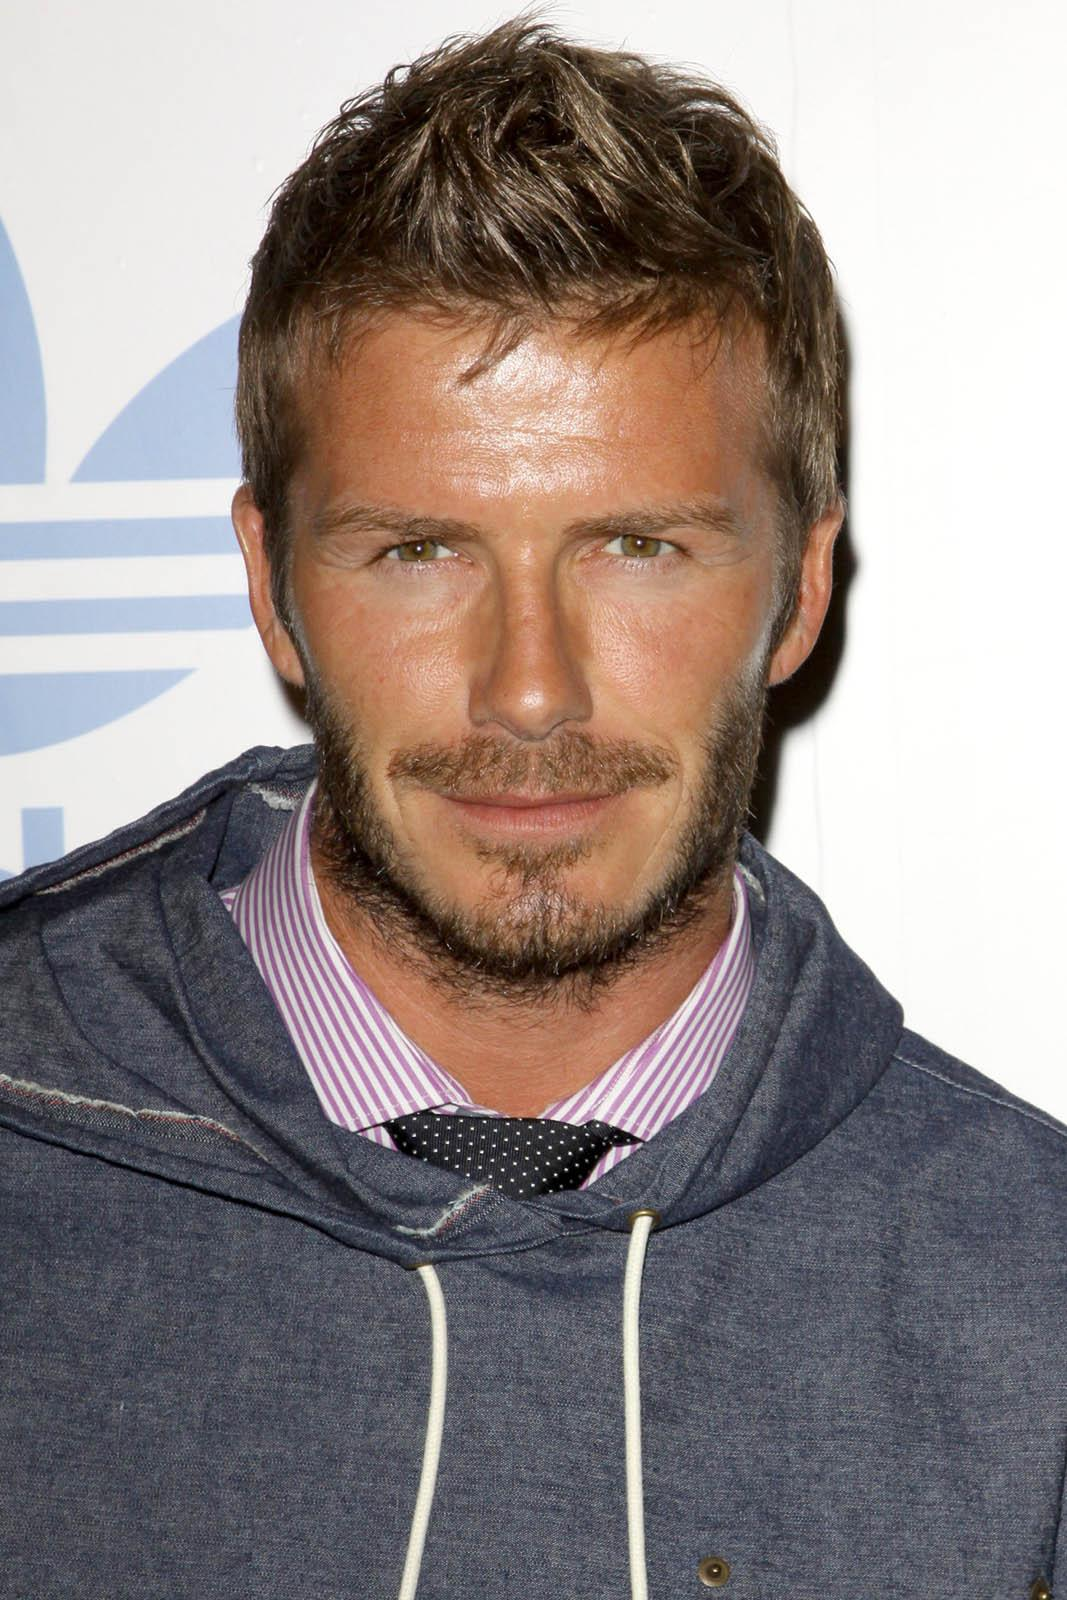 David Beckham Haircut 2011